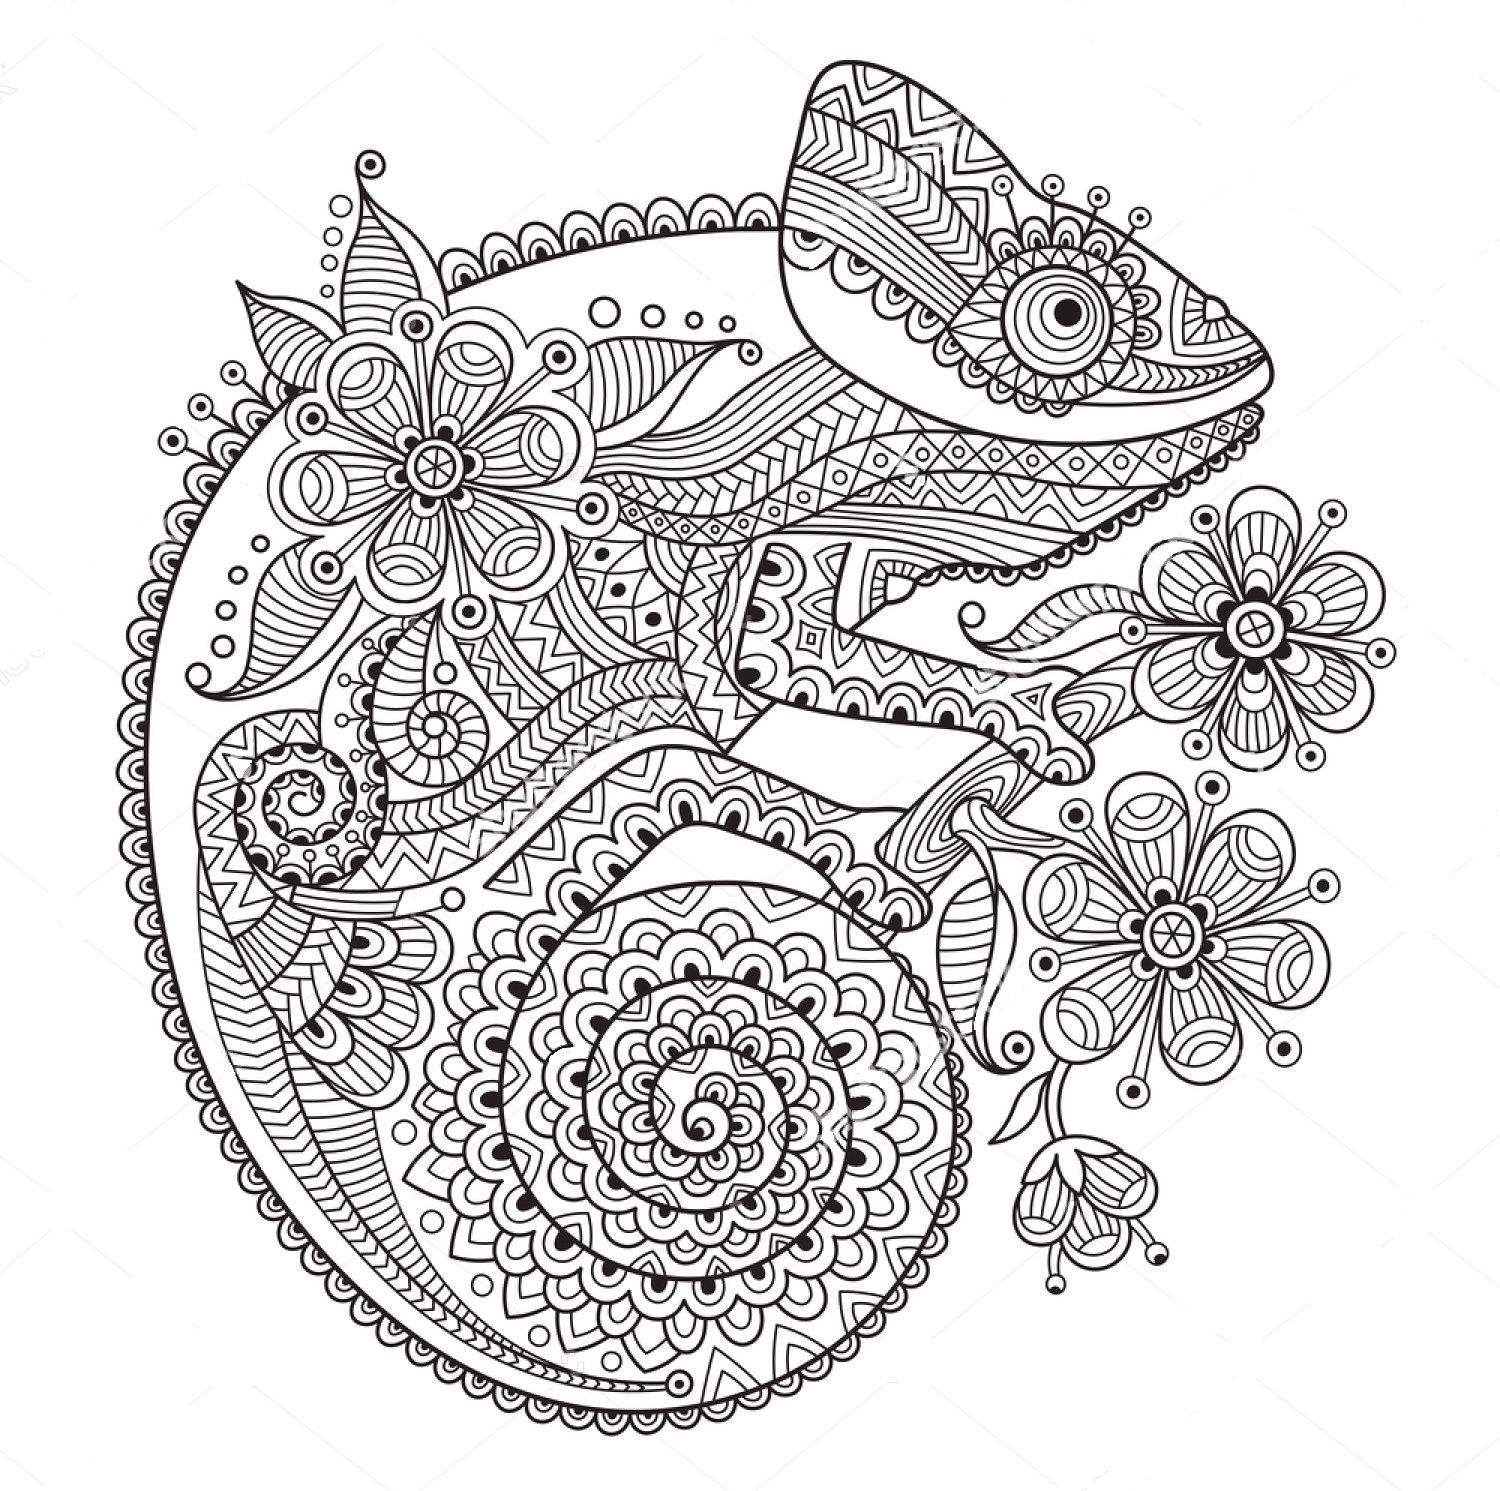 Chameleon zentangle coloring page   Pattern coloring pages ...